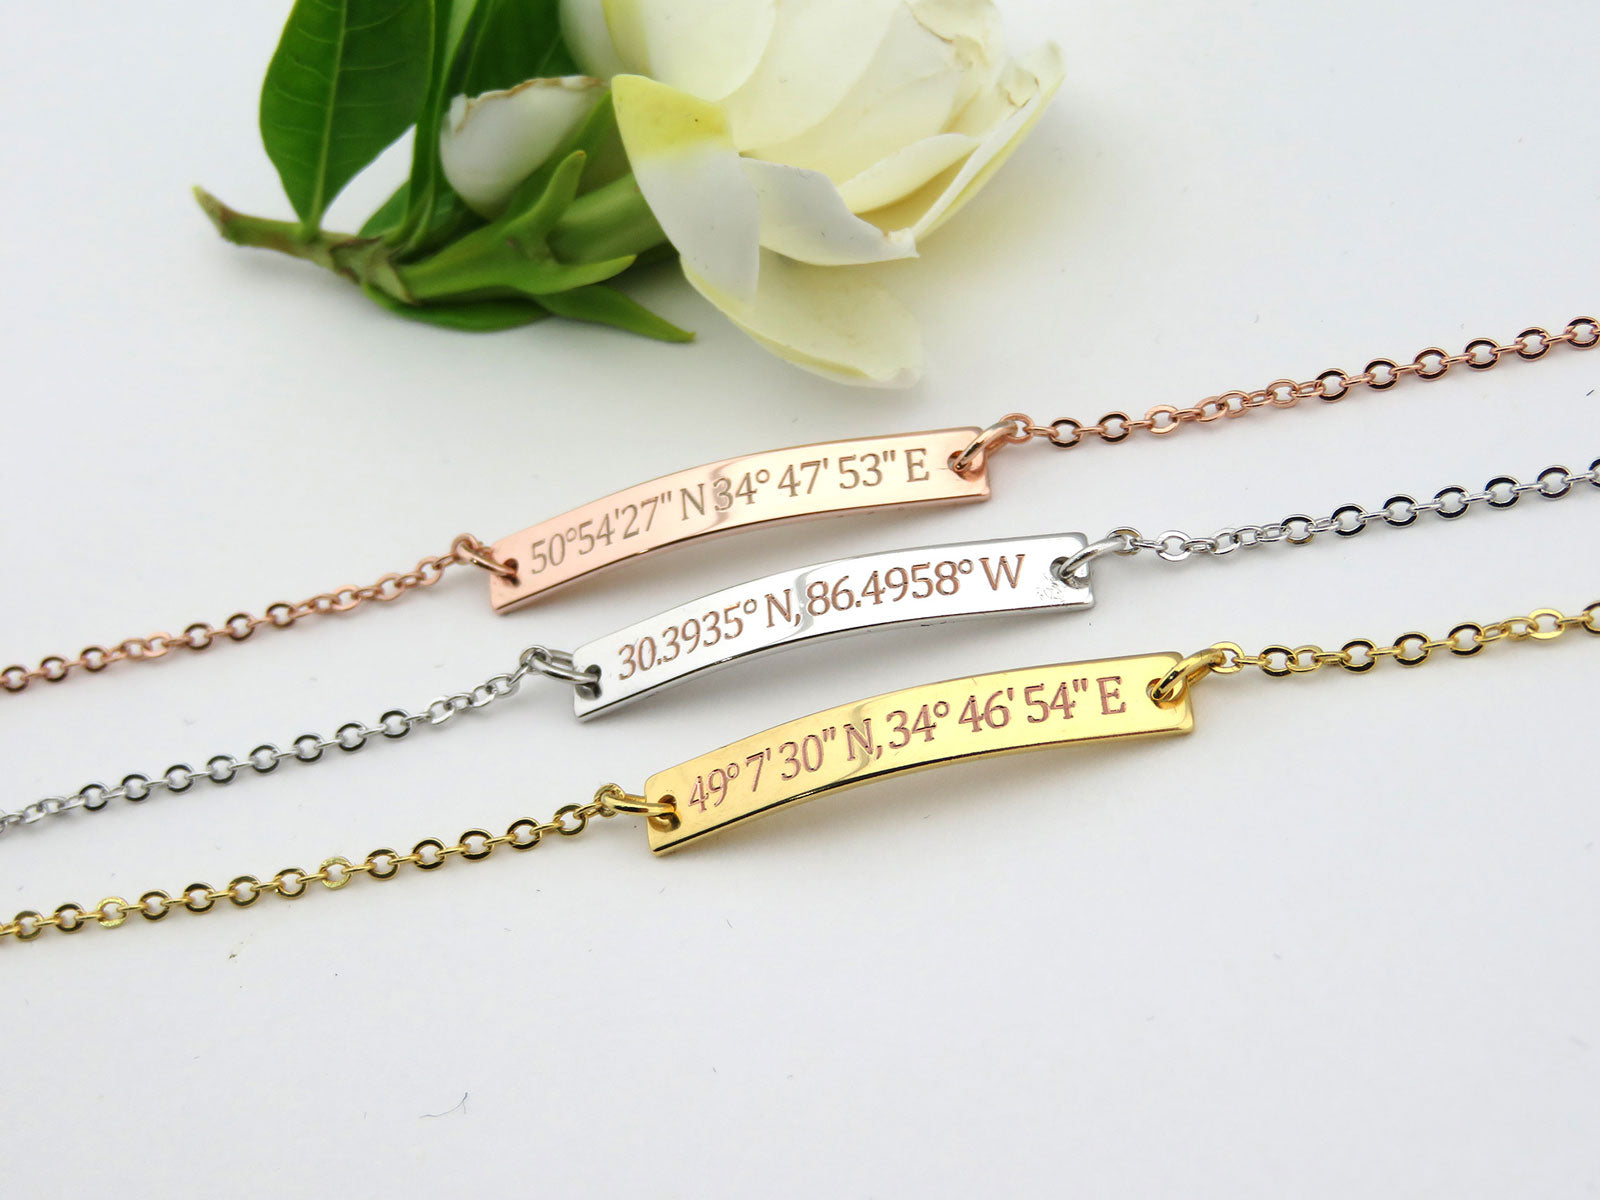 gps never we him bracelet pin first coordinates met customcoordinatebracelet gift the time personalized coordinate s latitudelongitudebracelet forget latitude for let